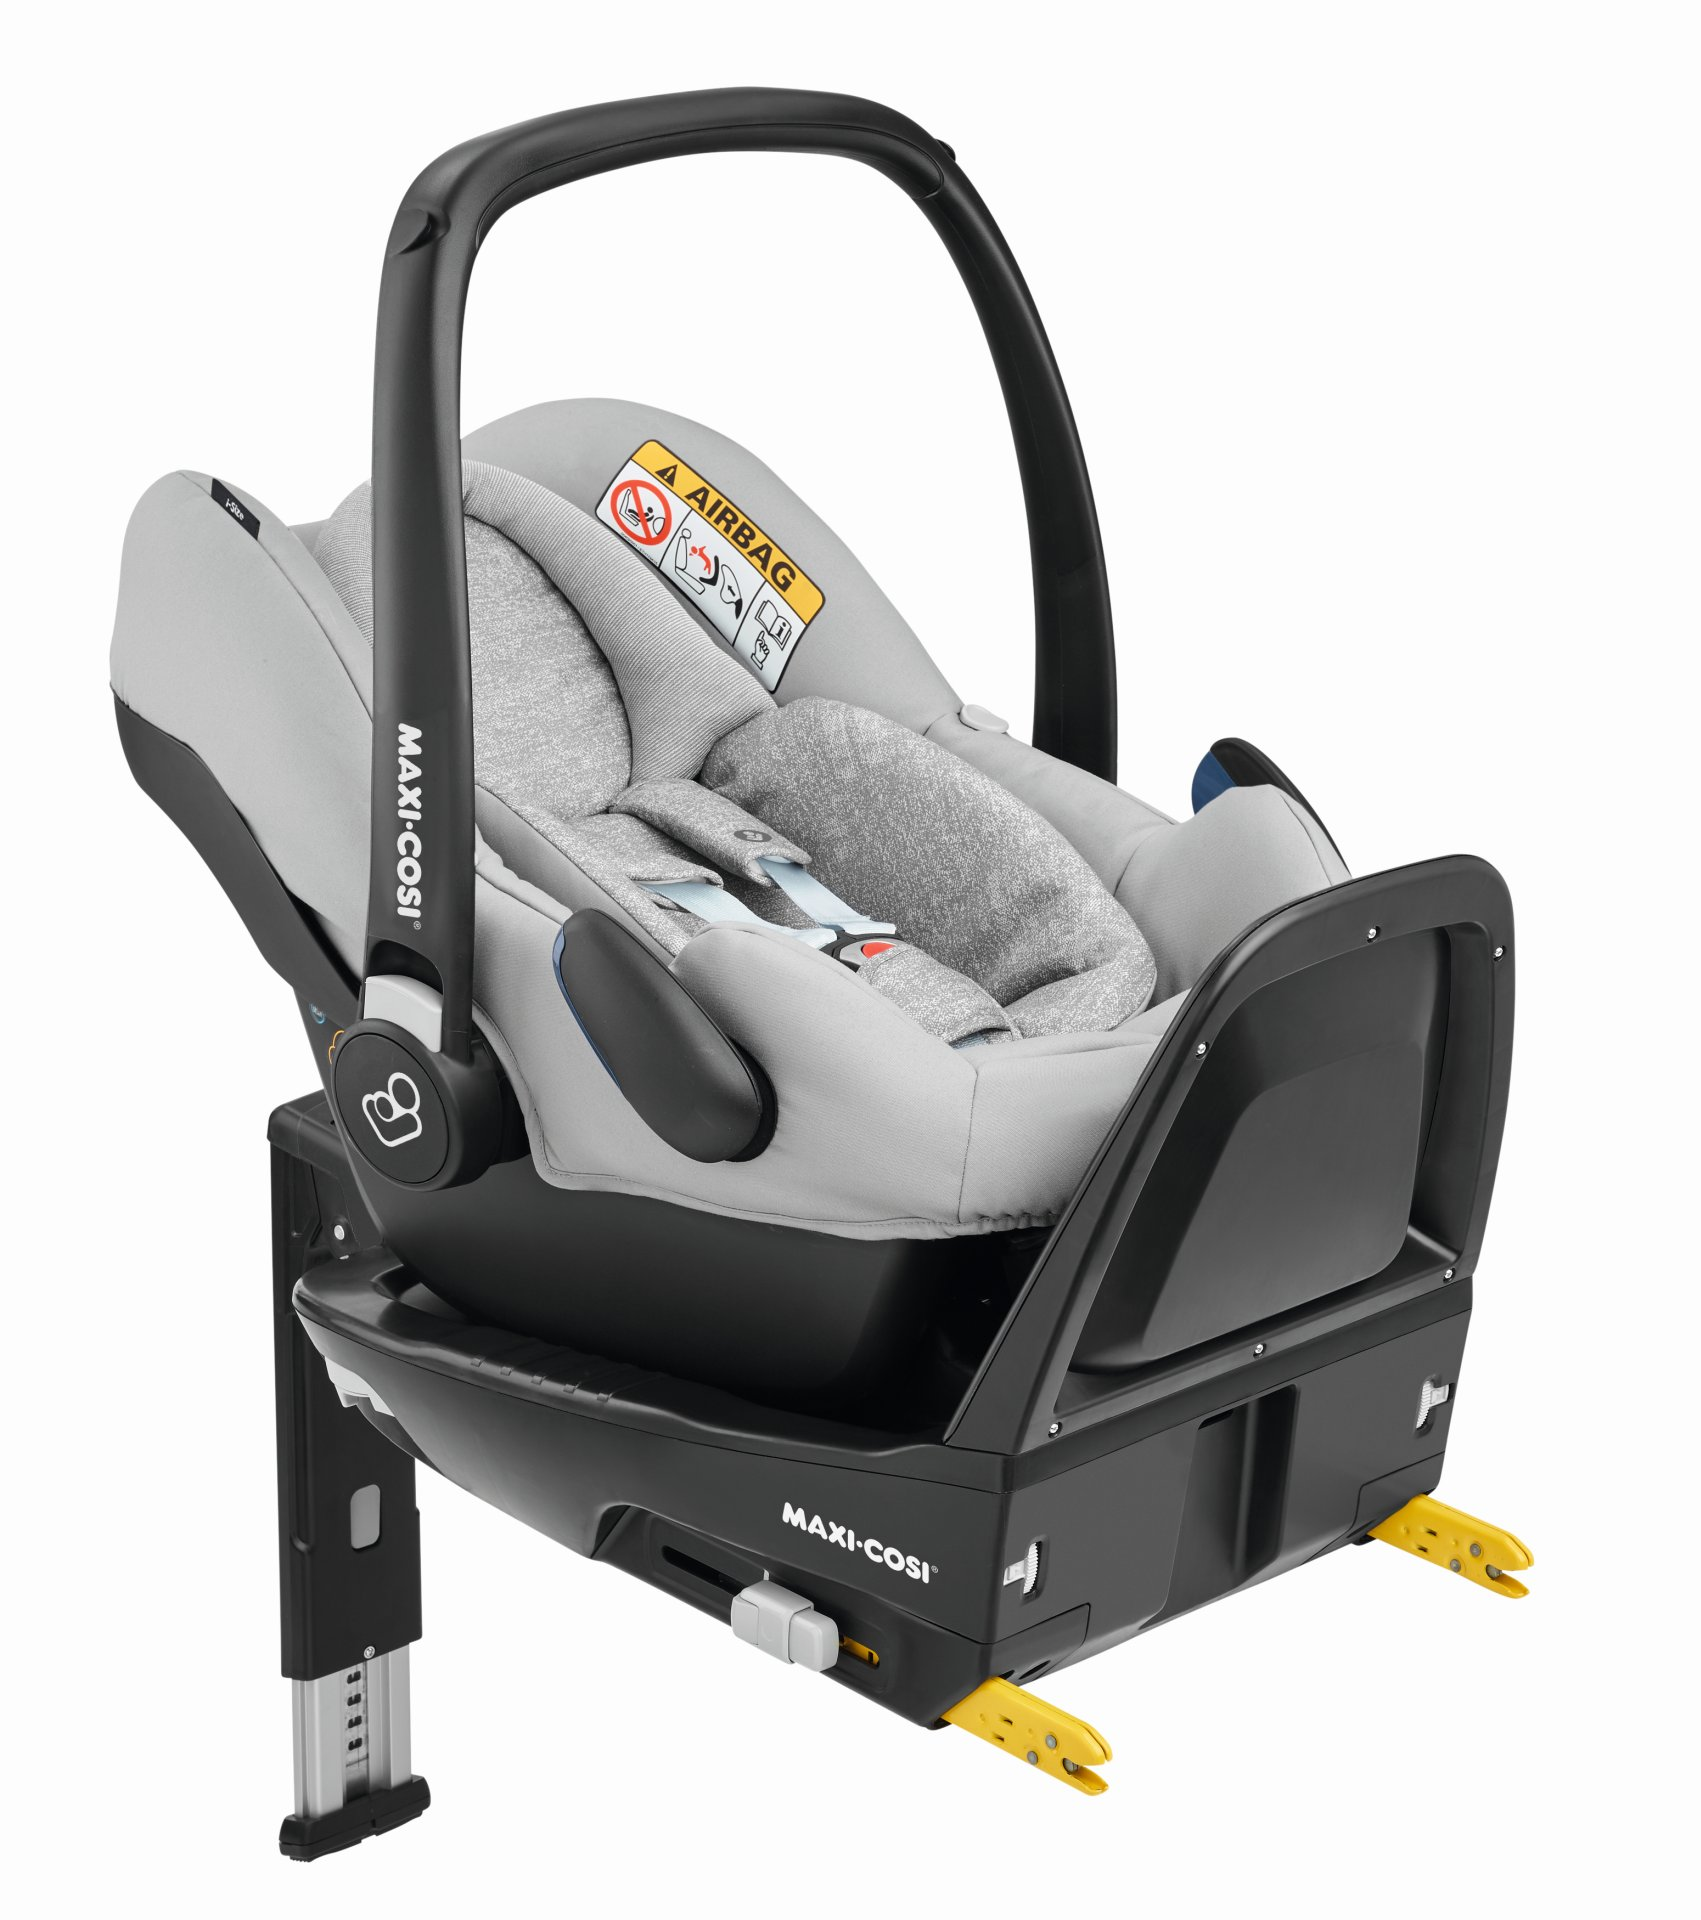 maxi cosi base 3wayfix 2019 buy at kidsroom car seats. Black Bedroom Furniture Sets. Home Design Ideas